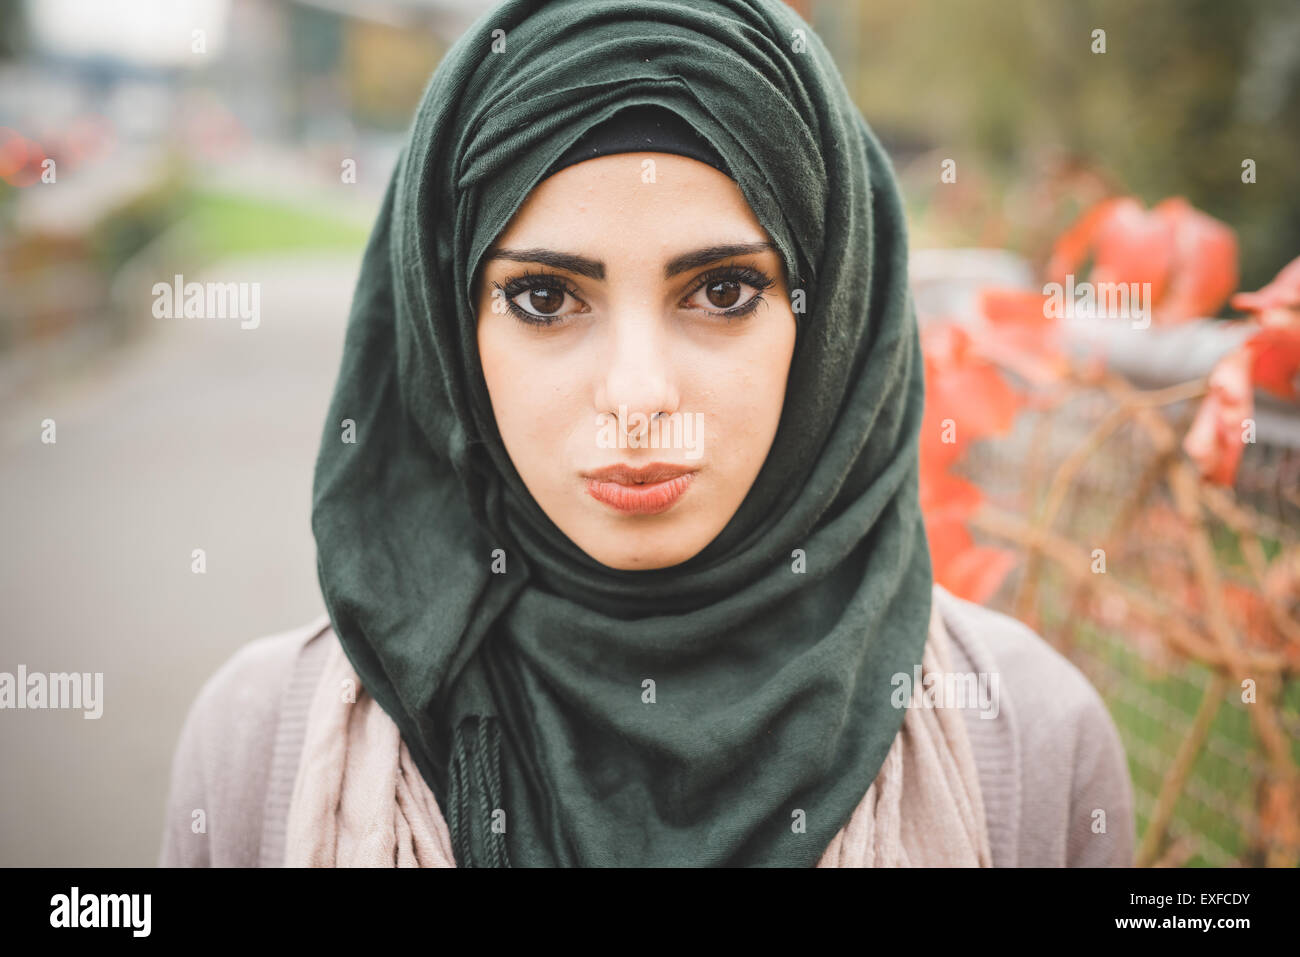 Close up portrait of young woman wearing hijab - Stock Image